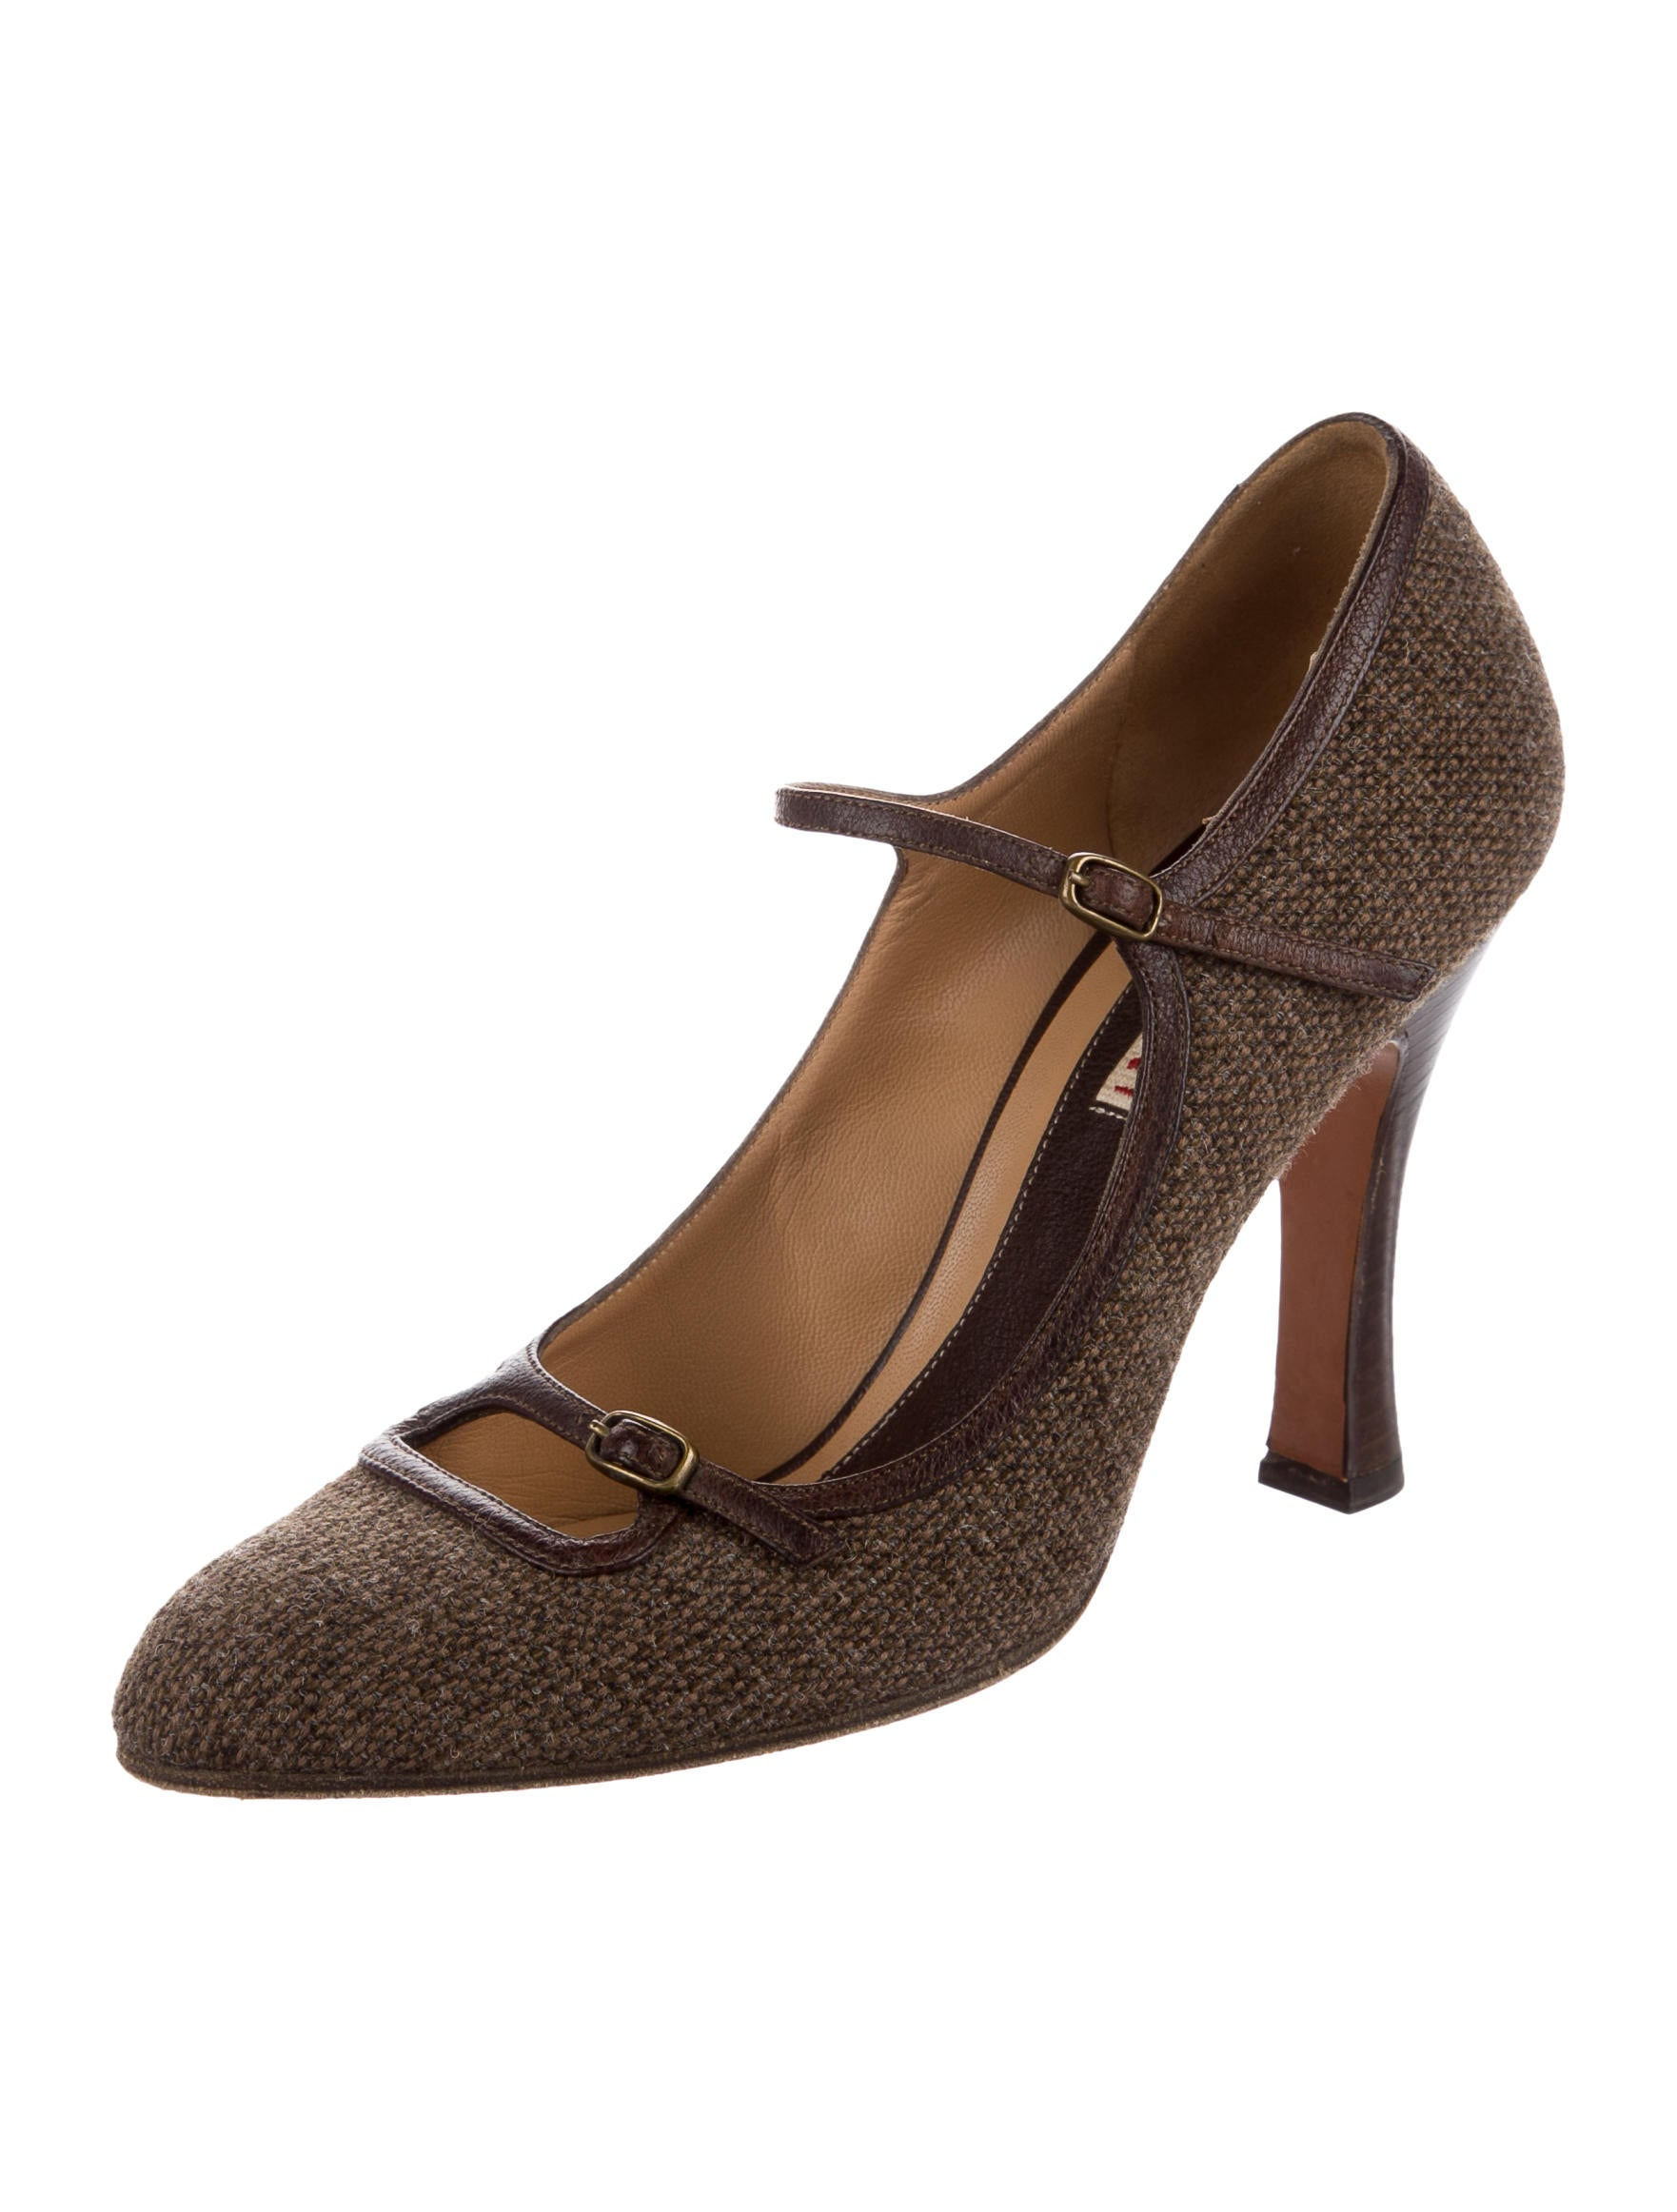 Marni Tweed Semi Pointed-Toe Pumps clearance store cheap online best wholesale cheap online clearance from china GMH4k